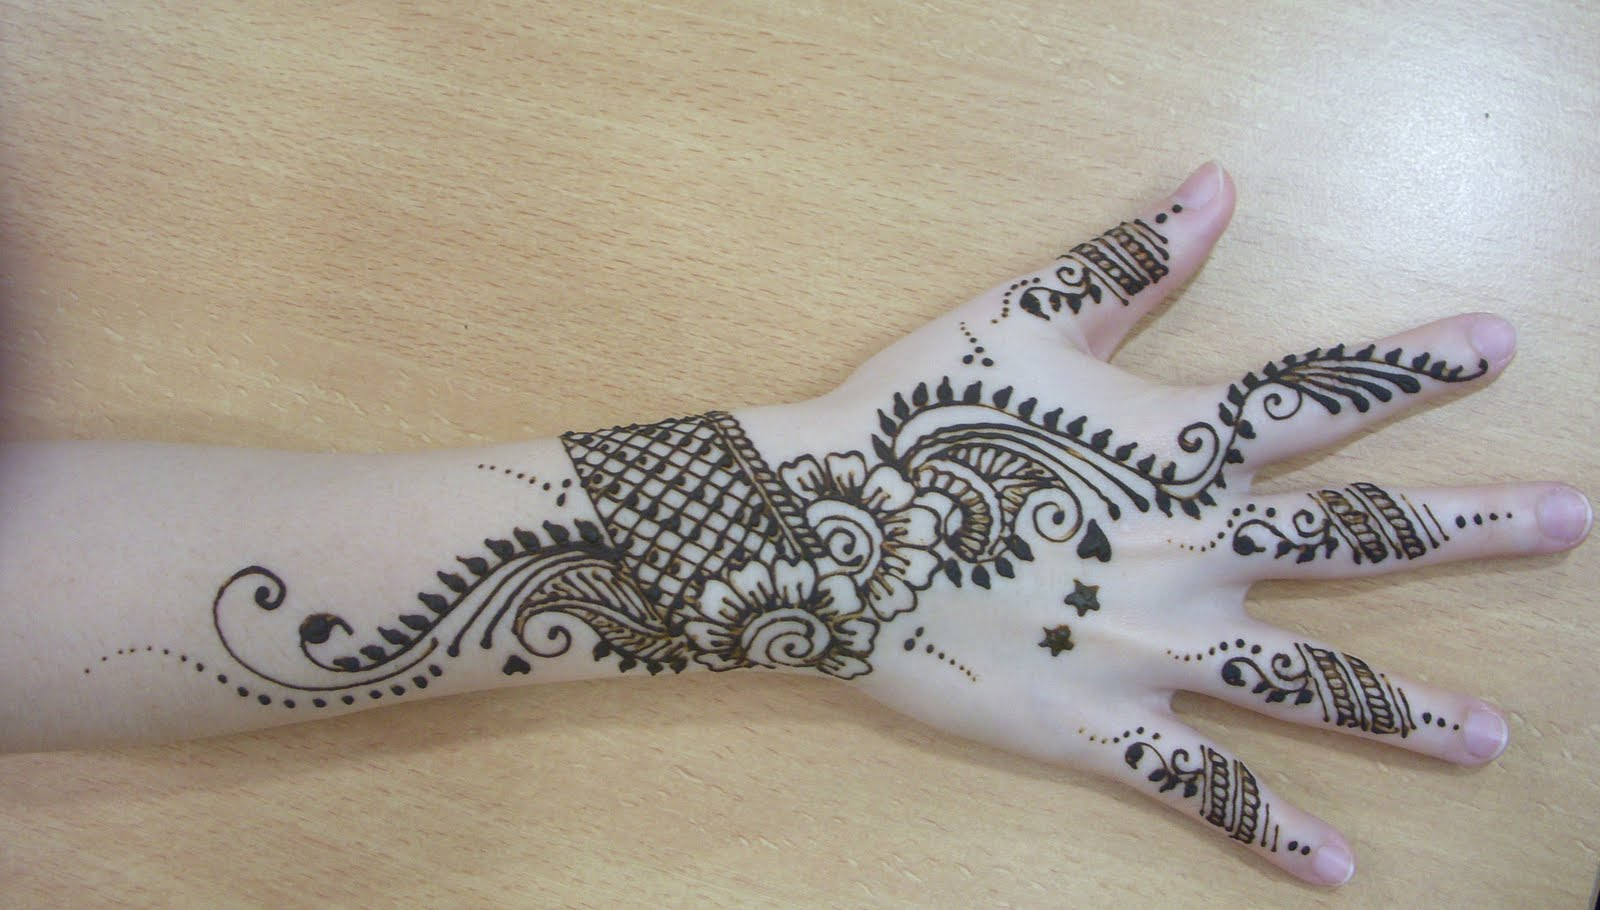 Henna And Tattoo Art: Art, Image, Henna Tattoo